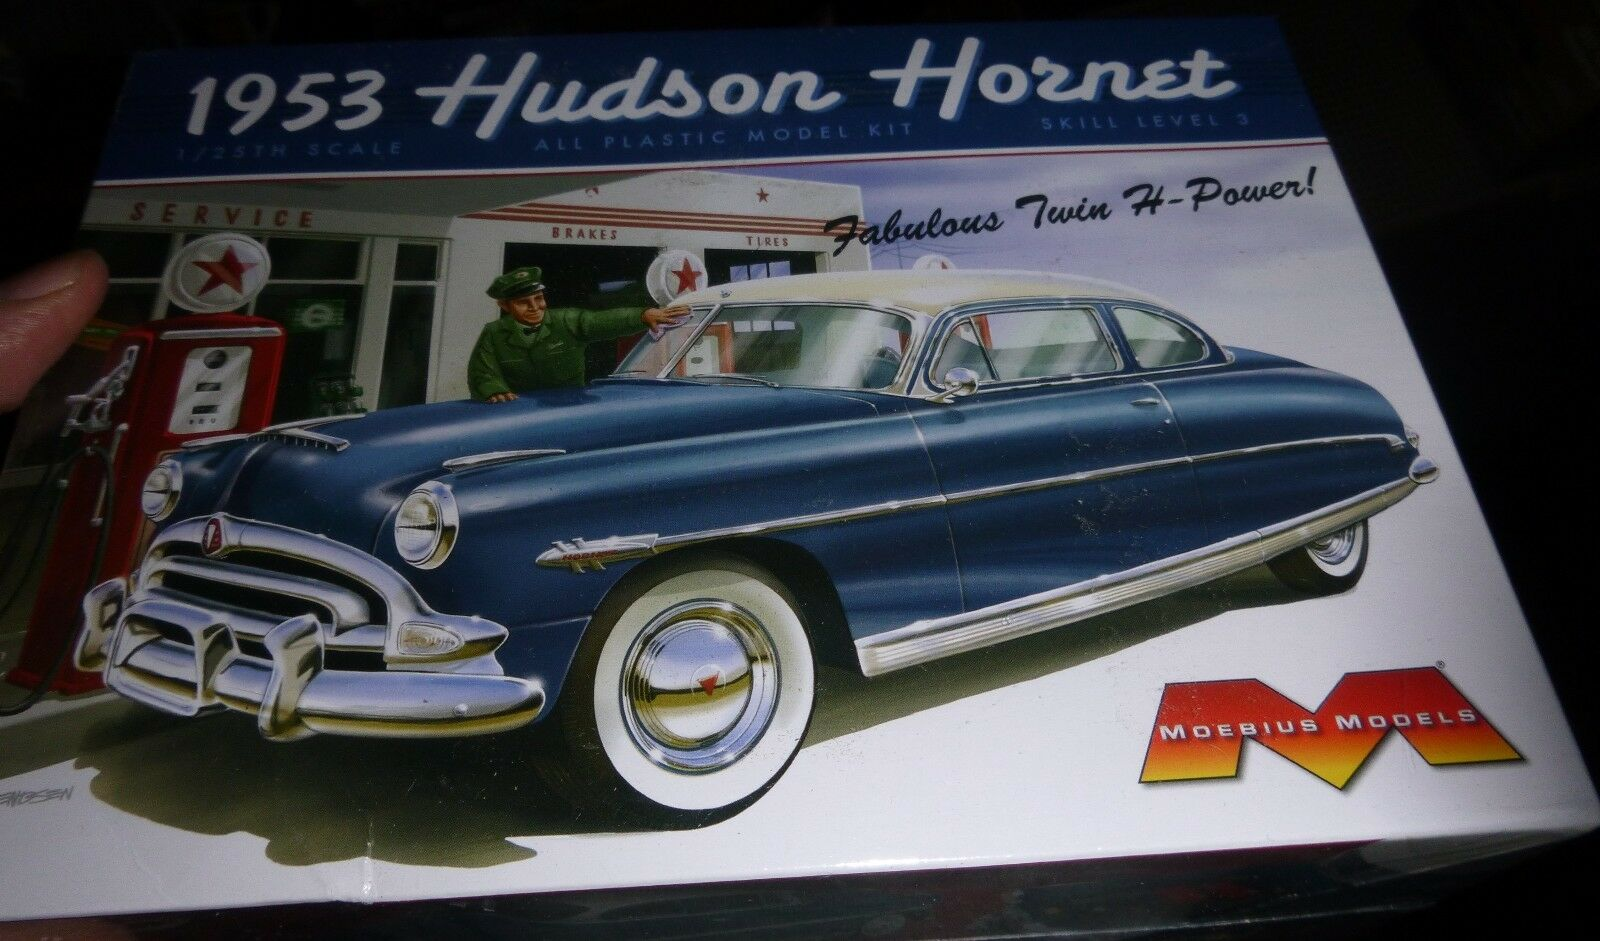 Moebius 1200 1953 Hudson Hornet Coupe Model Car Mountain Kit 1 25 Fs 1941 Oldsmobile Club Of 2only Available